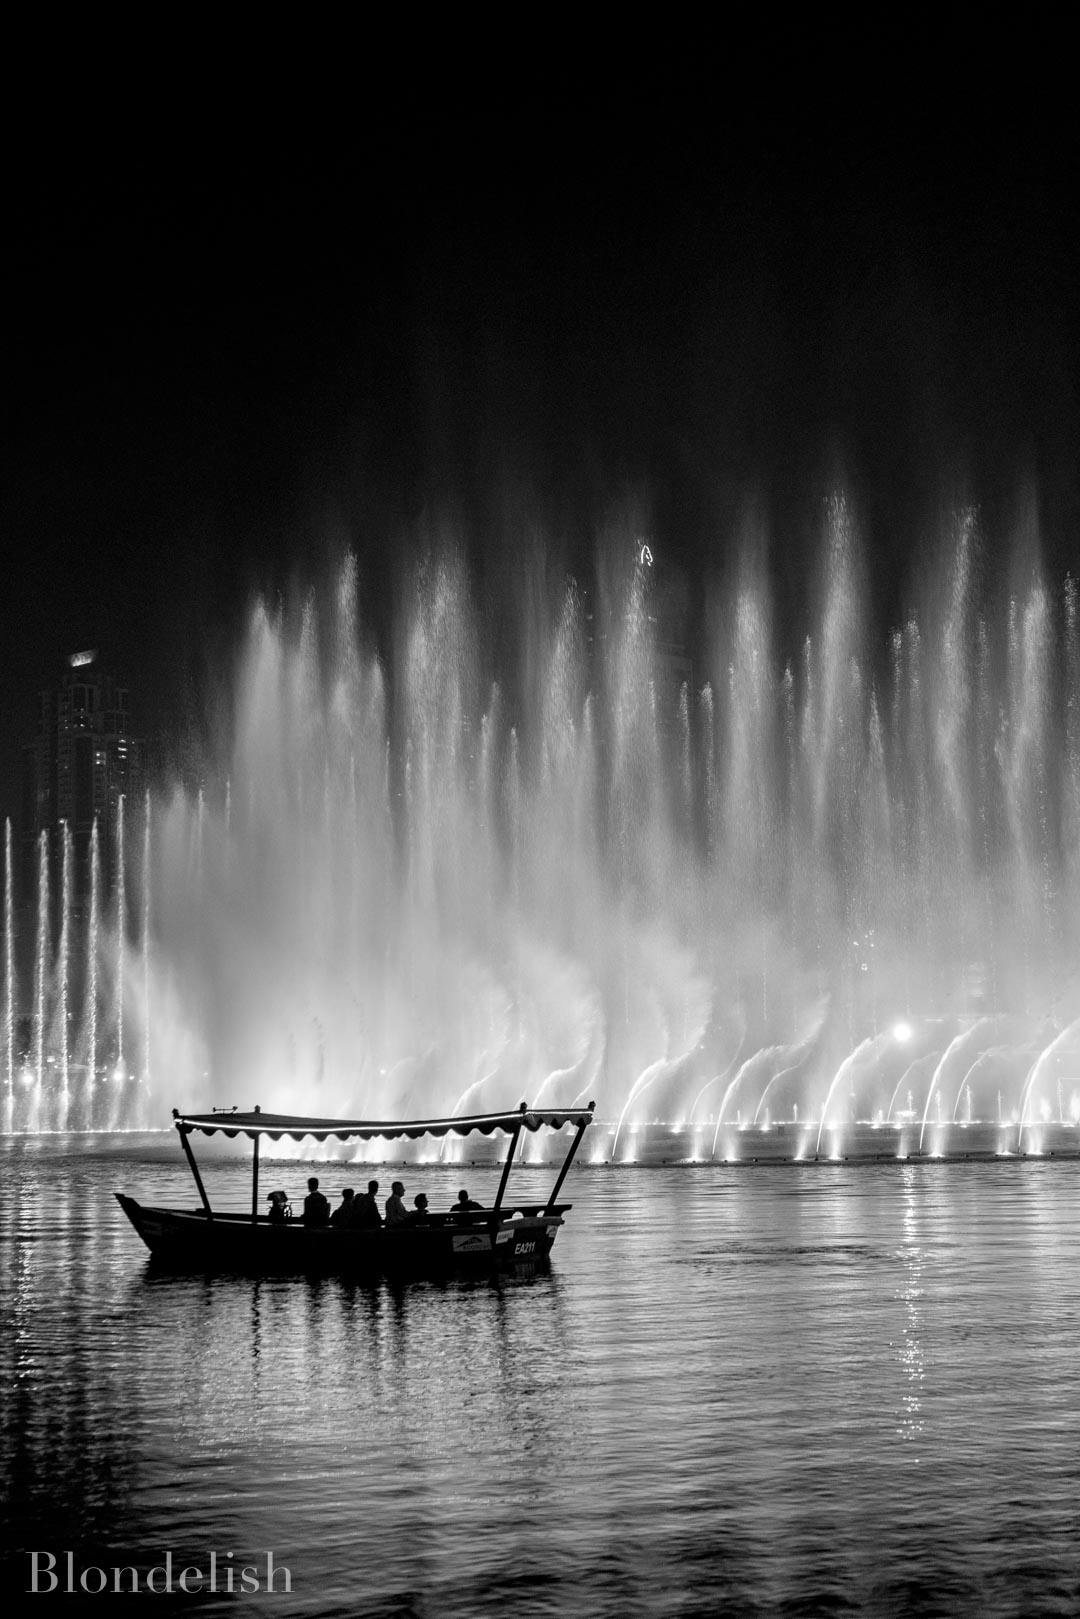 Dubai Fountains - Best Places to Visit in Dubai - Things to do in Dubai